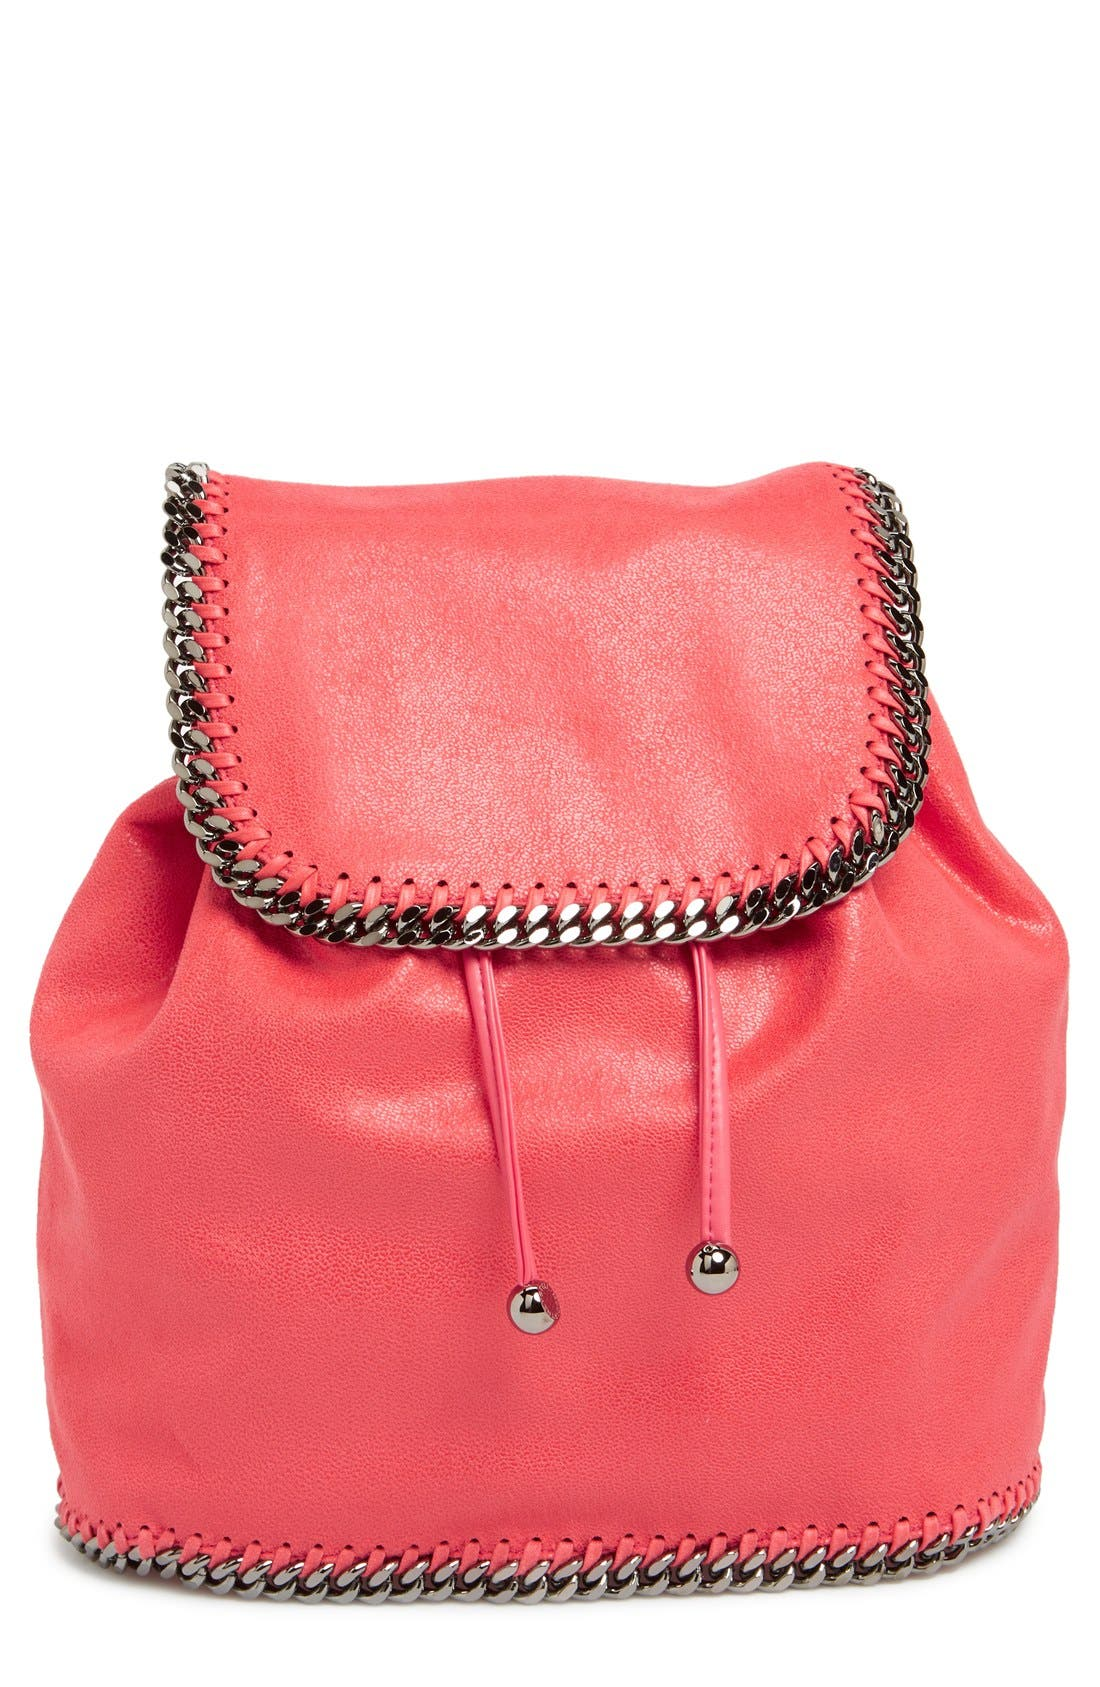 Main Image - Stella McCartney 'Falabella - Shaggy Deer' Faux Leather Backpack